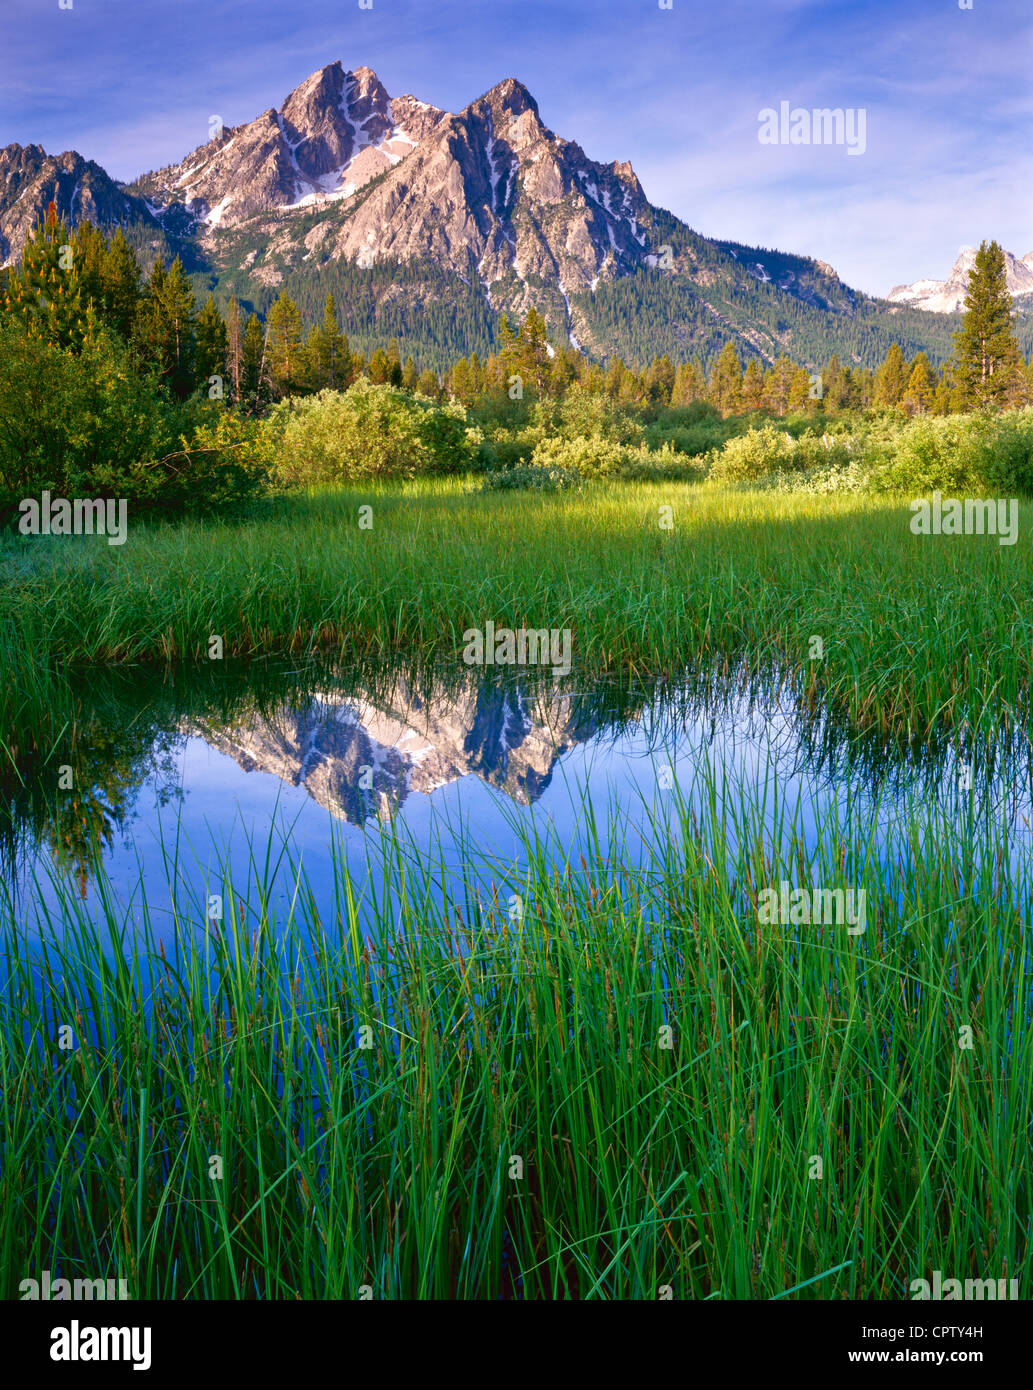 Sawtooth National Recreation Area, ID Morning sun on Mount McGown with reflections on a grassy wetland pond - Stock Image